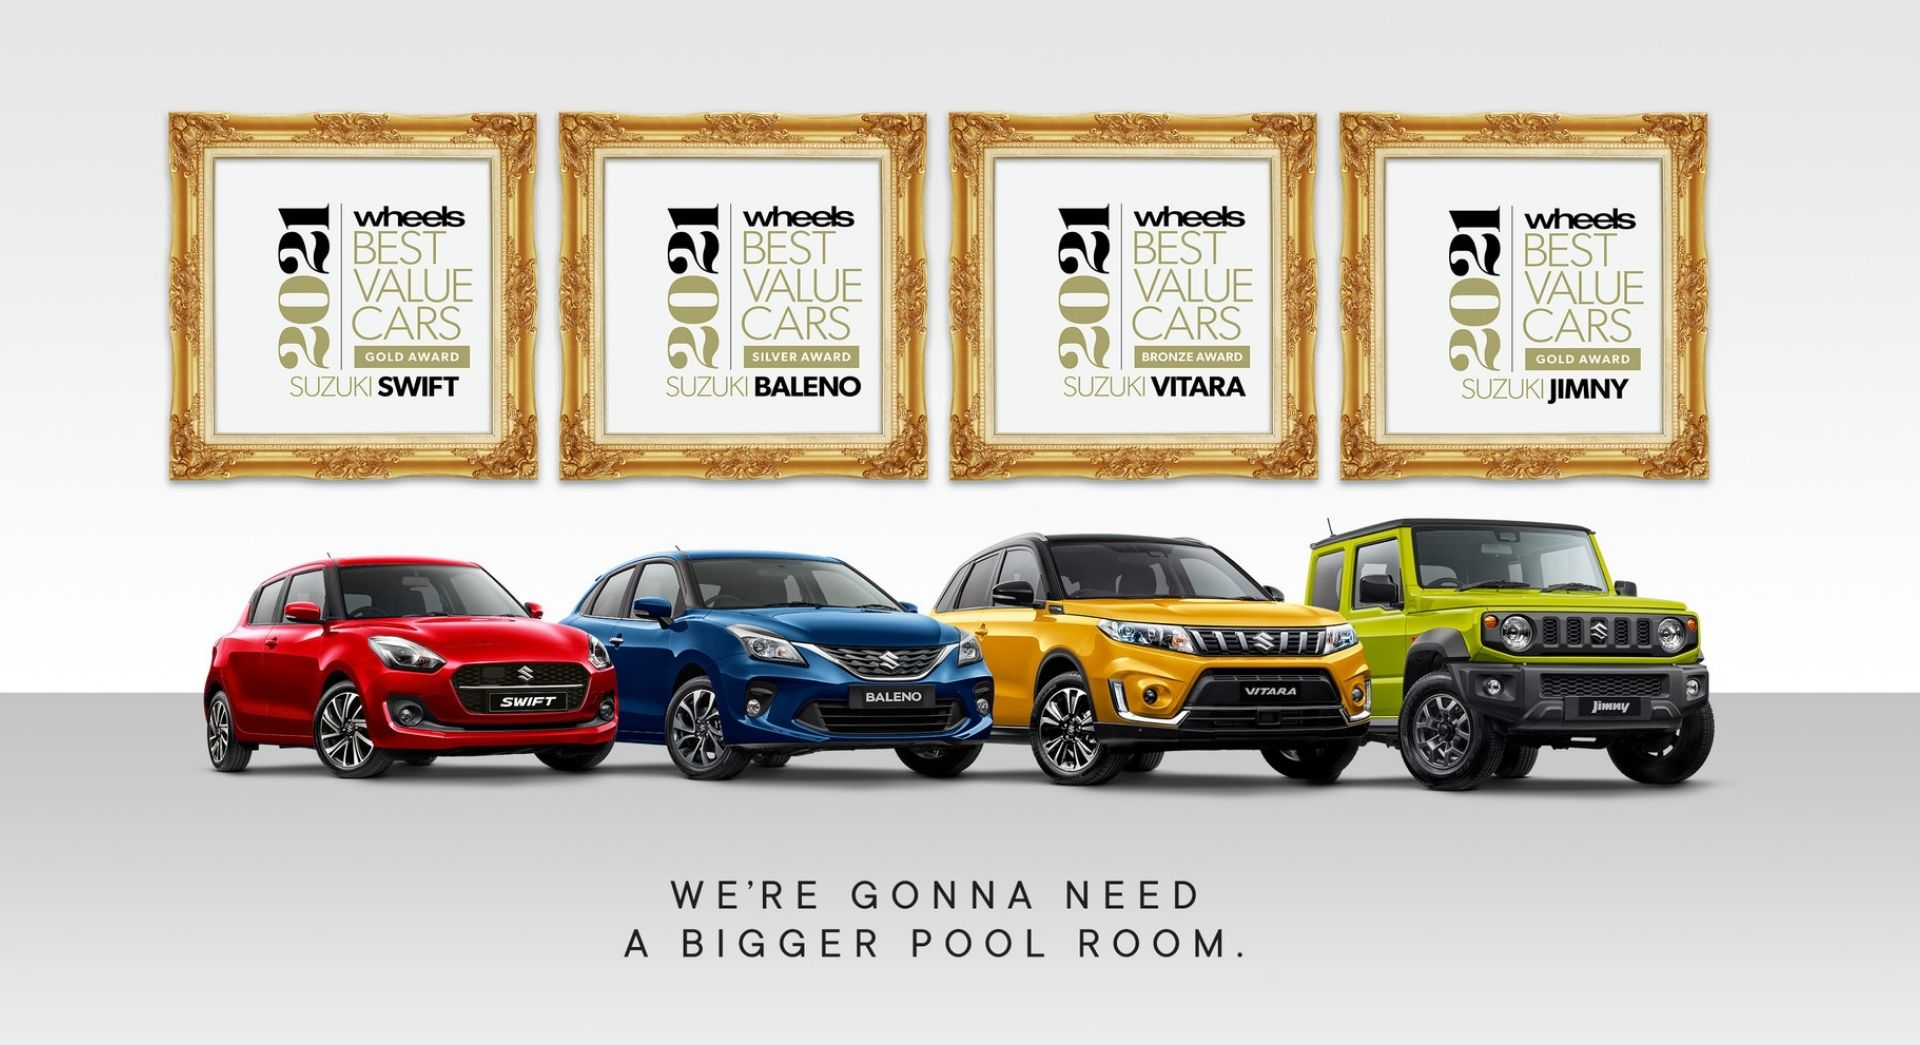 We're gonna need a bigger pool room. View the latest Suzuki Offers.